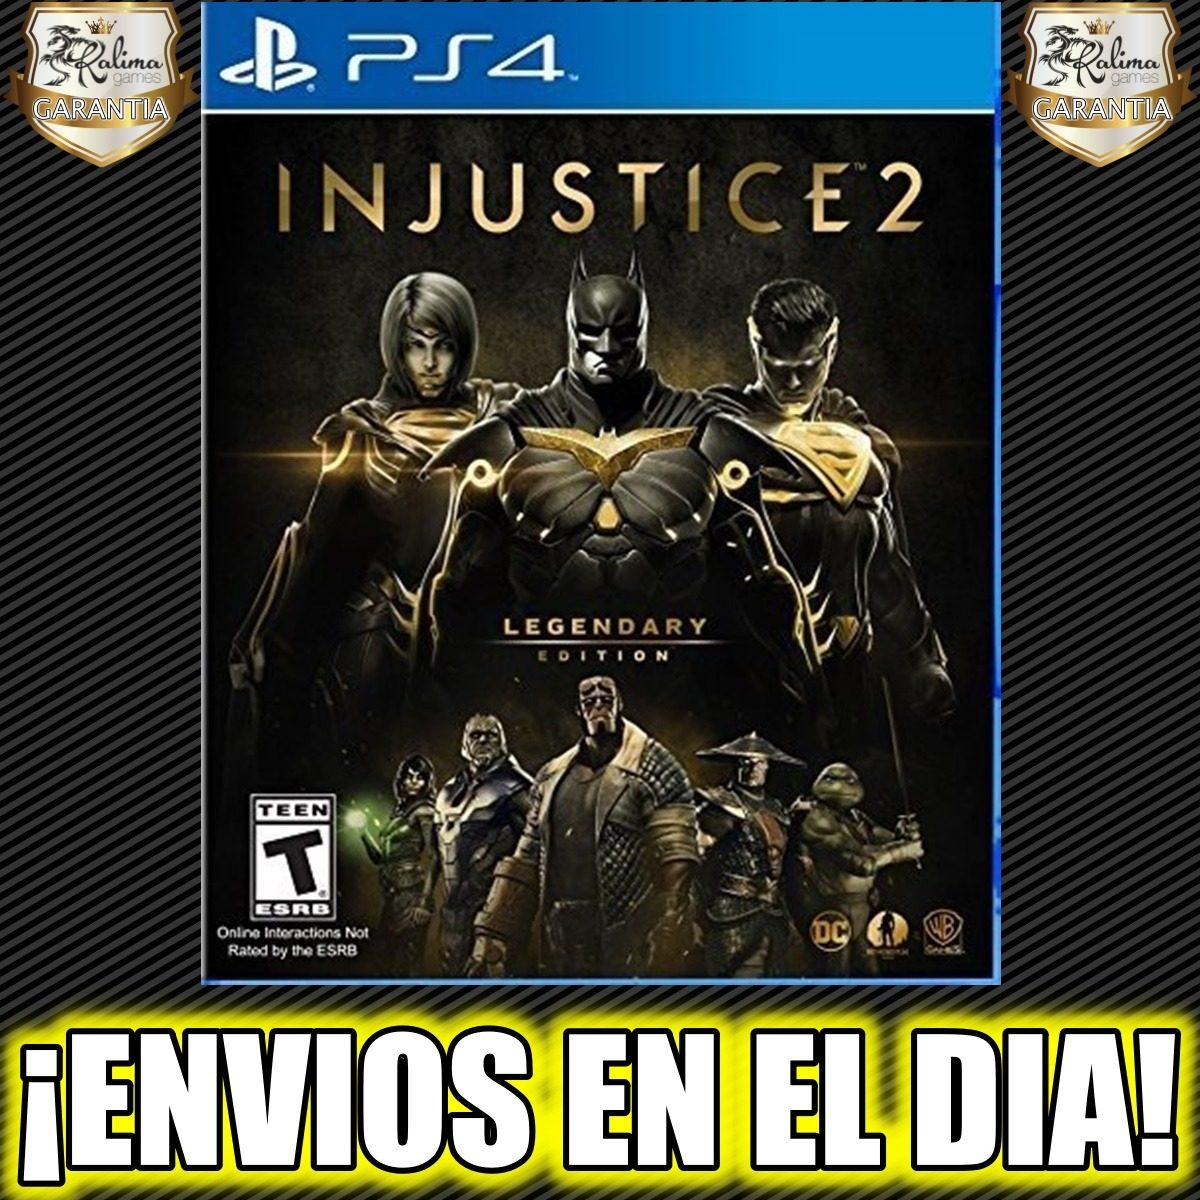 Injustice 2 Legendary Edition Ps4 Juego Digital 2 450 00 En